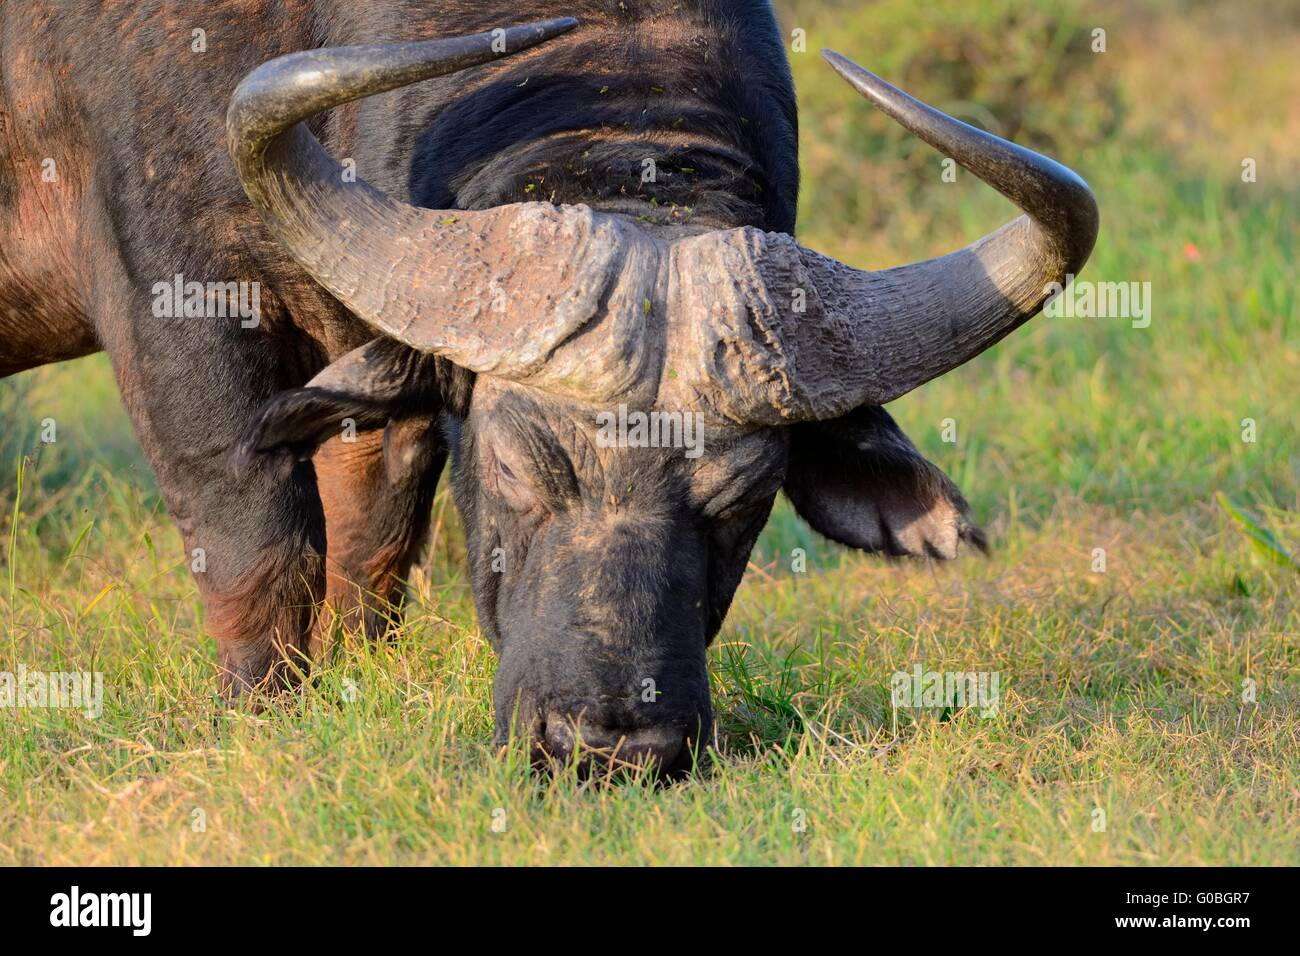 African buffalo or Cape buffalo (Syncerus caffer), grazing, Addo National Park, Eastern Cape, South Africa, Africa - Stock Image